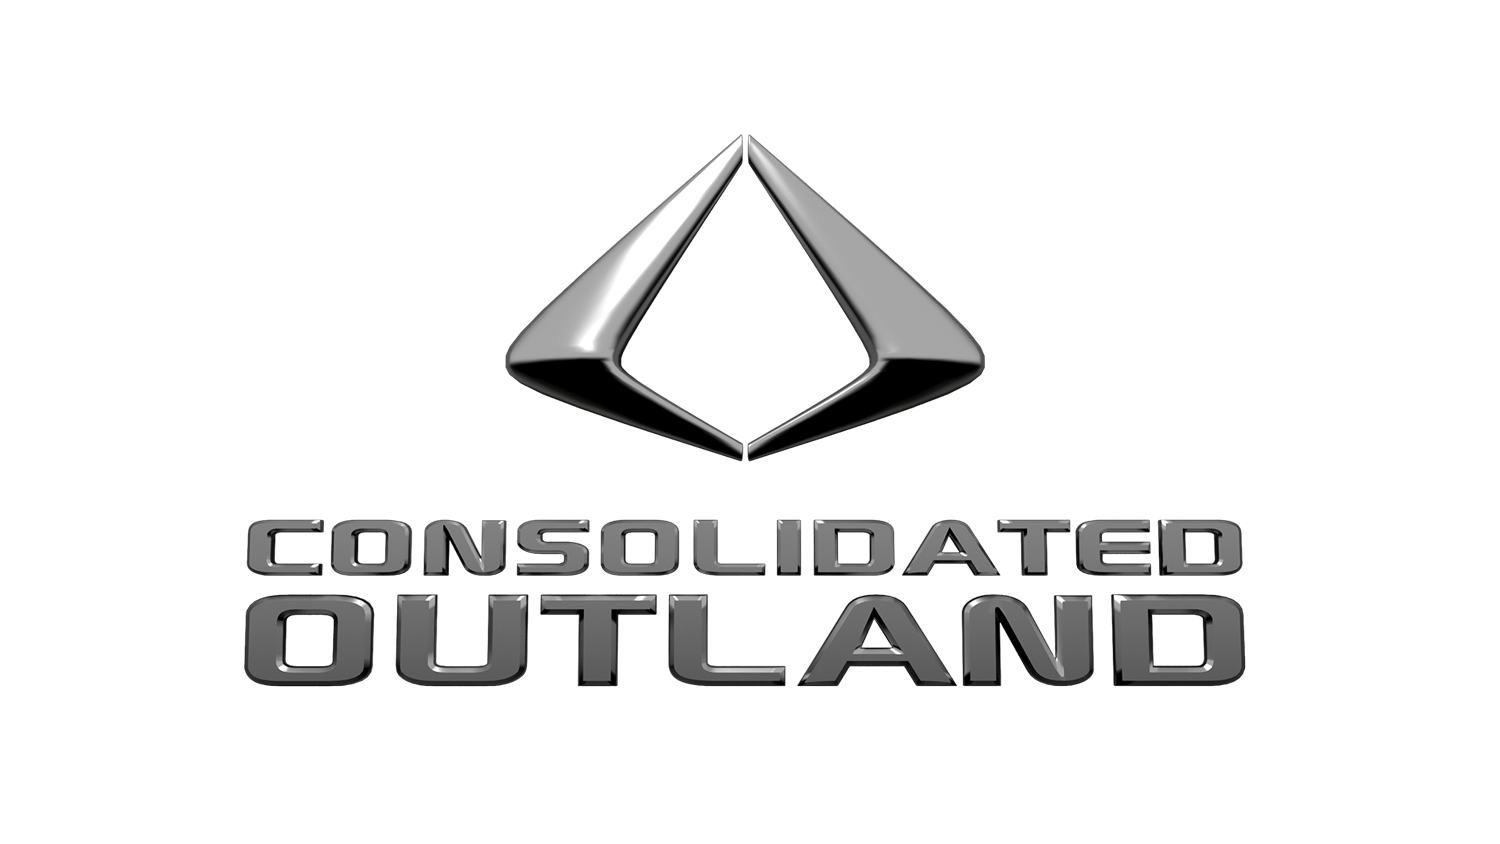 QA - Consolidated_Outland_logo.png